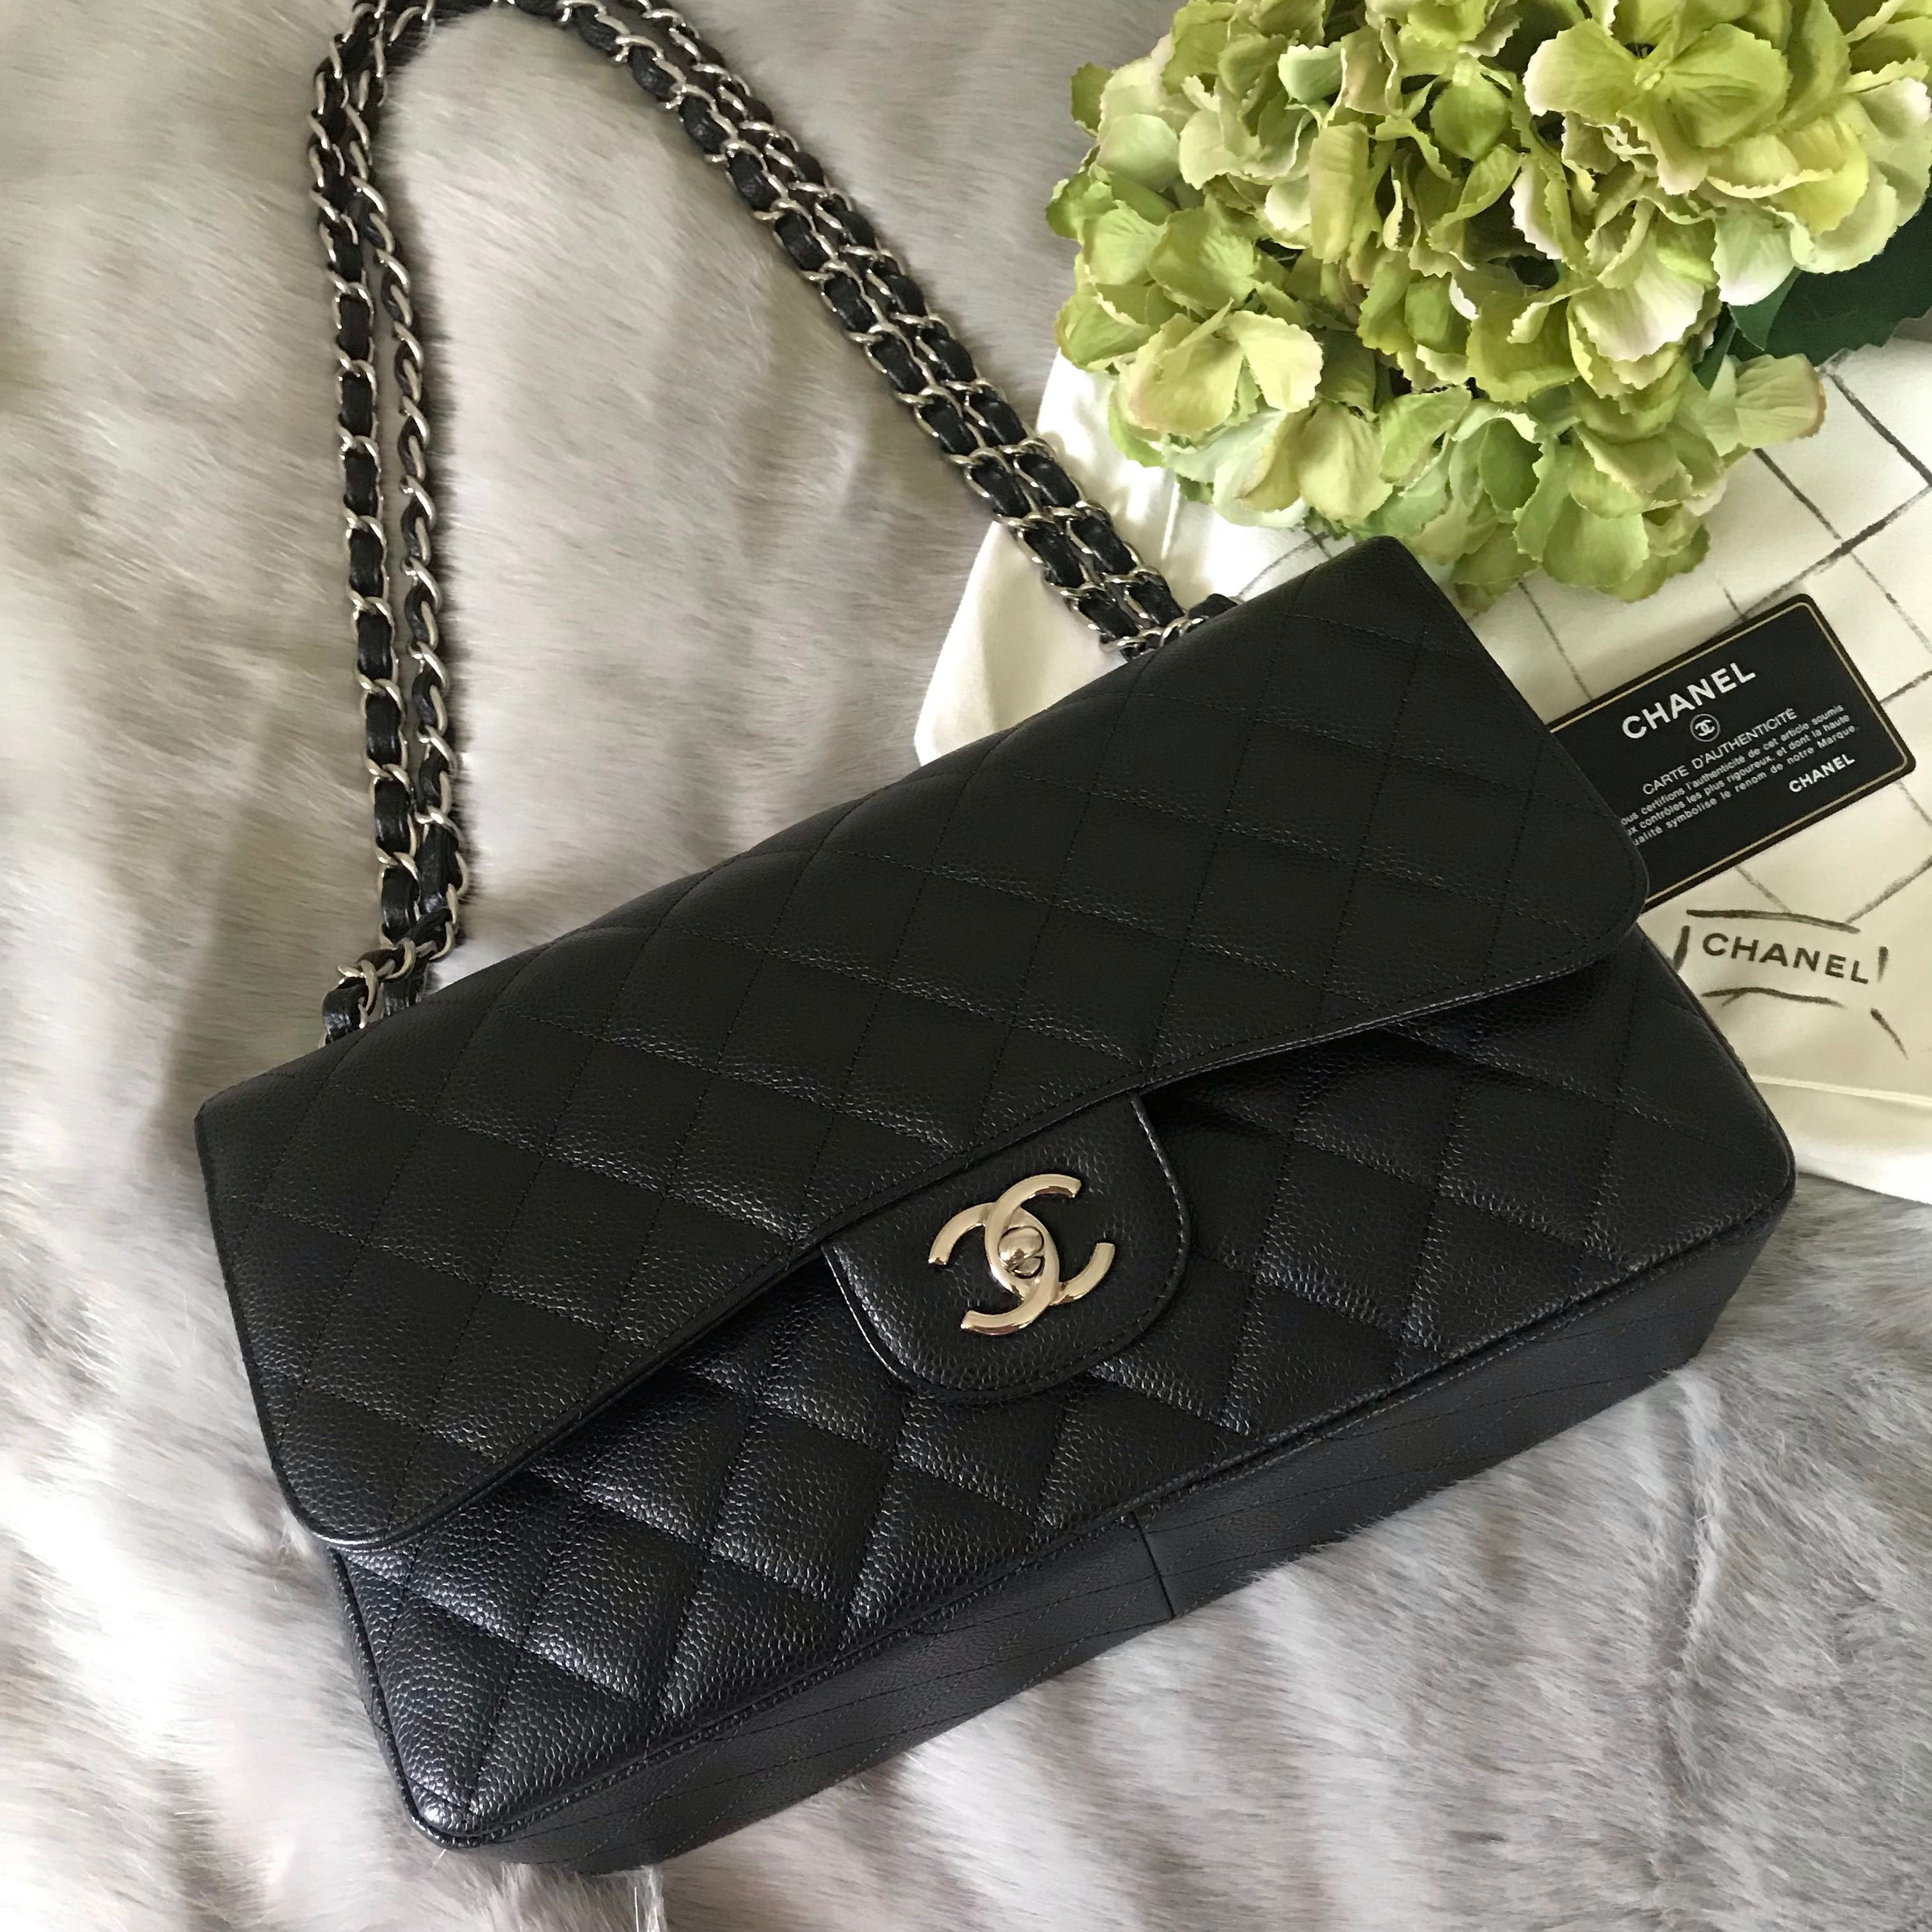 87eae1c34dc7 (ON HOLD) CHANEL JUMBO CLASSIC CAVIAR DOUBLE FLAP BAG - 💯% AUTHENTIC,  Luxury, Bags & Wallets, Handbags on Carousell